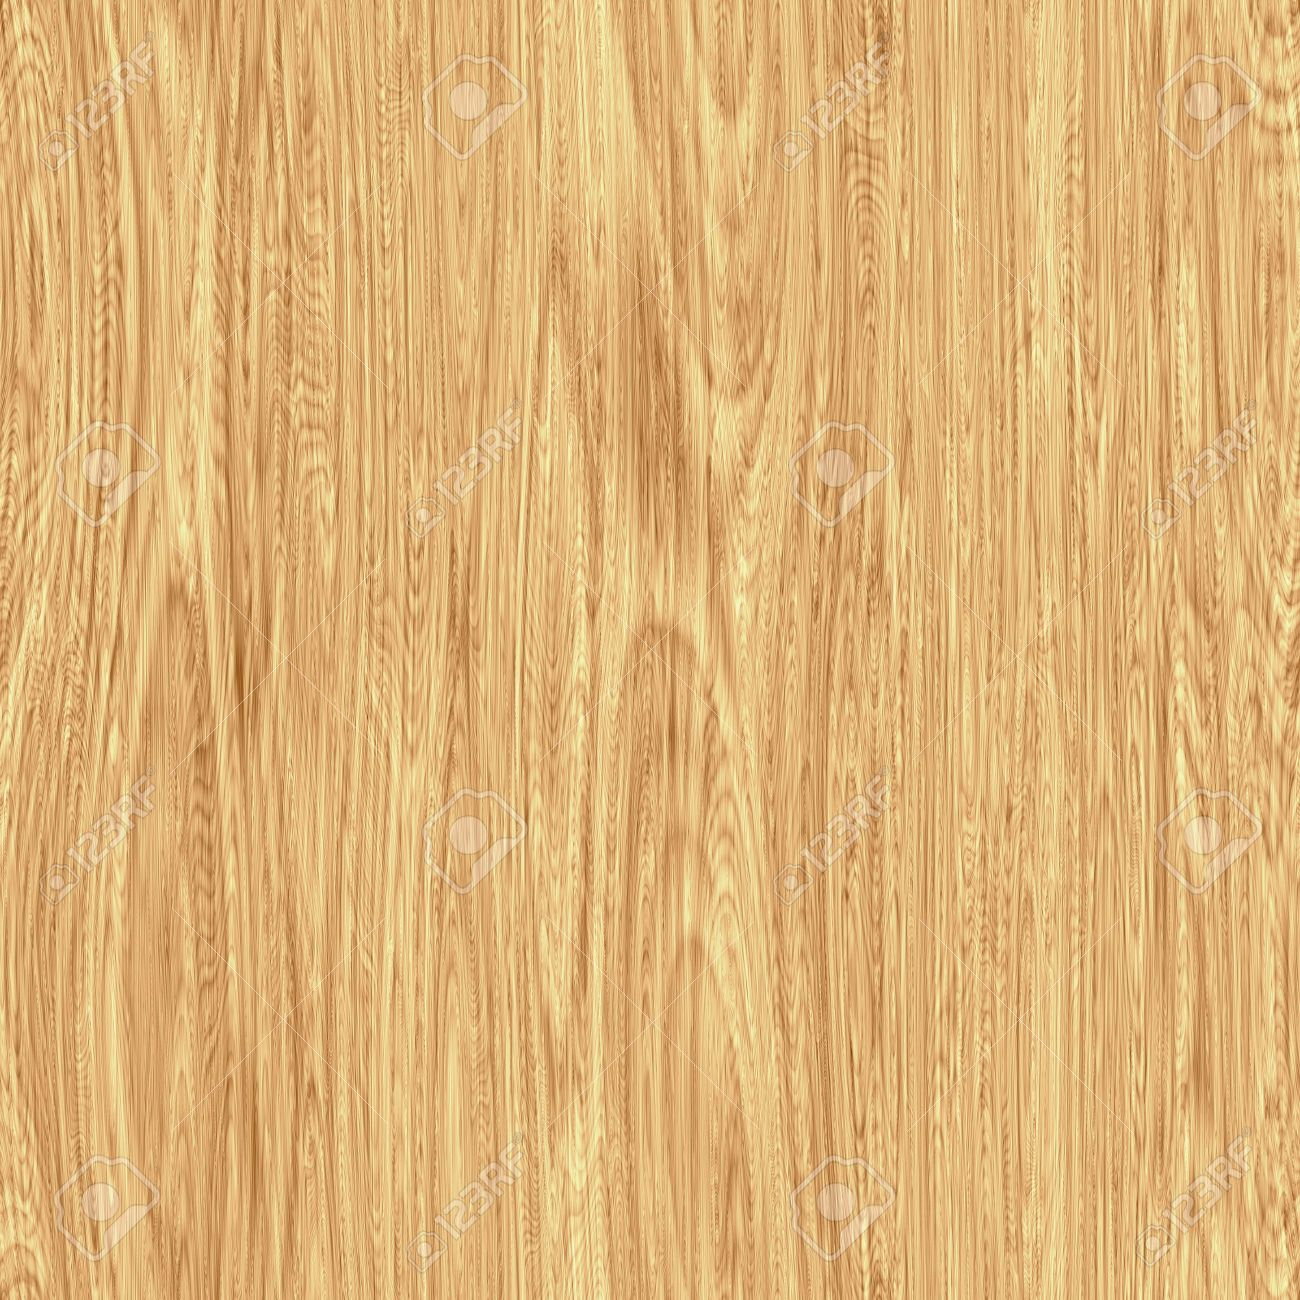 seamless light wood floor. Seamless Light Wood Stock Photo  5693947 Picture And Royalty Free Image